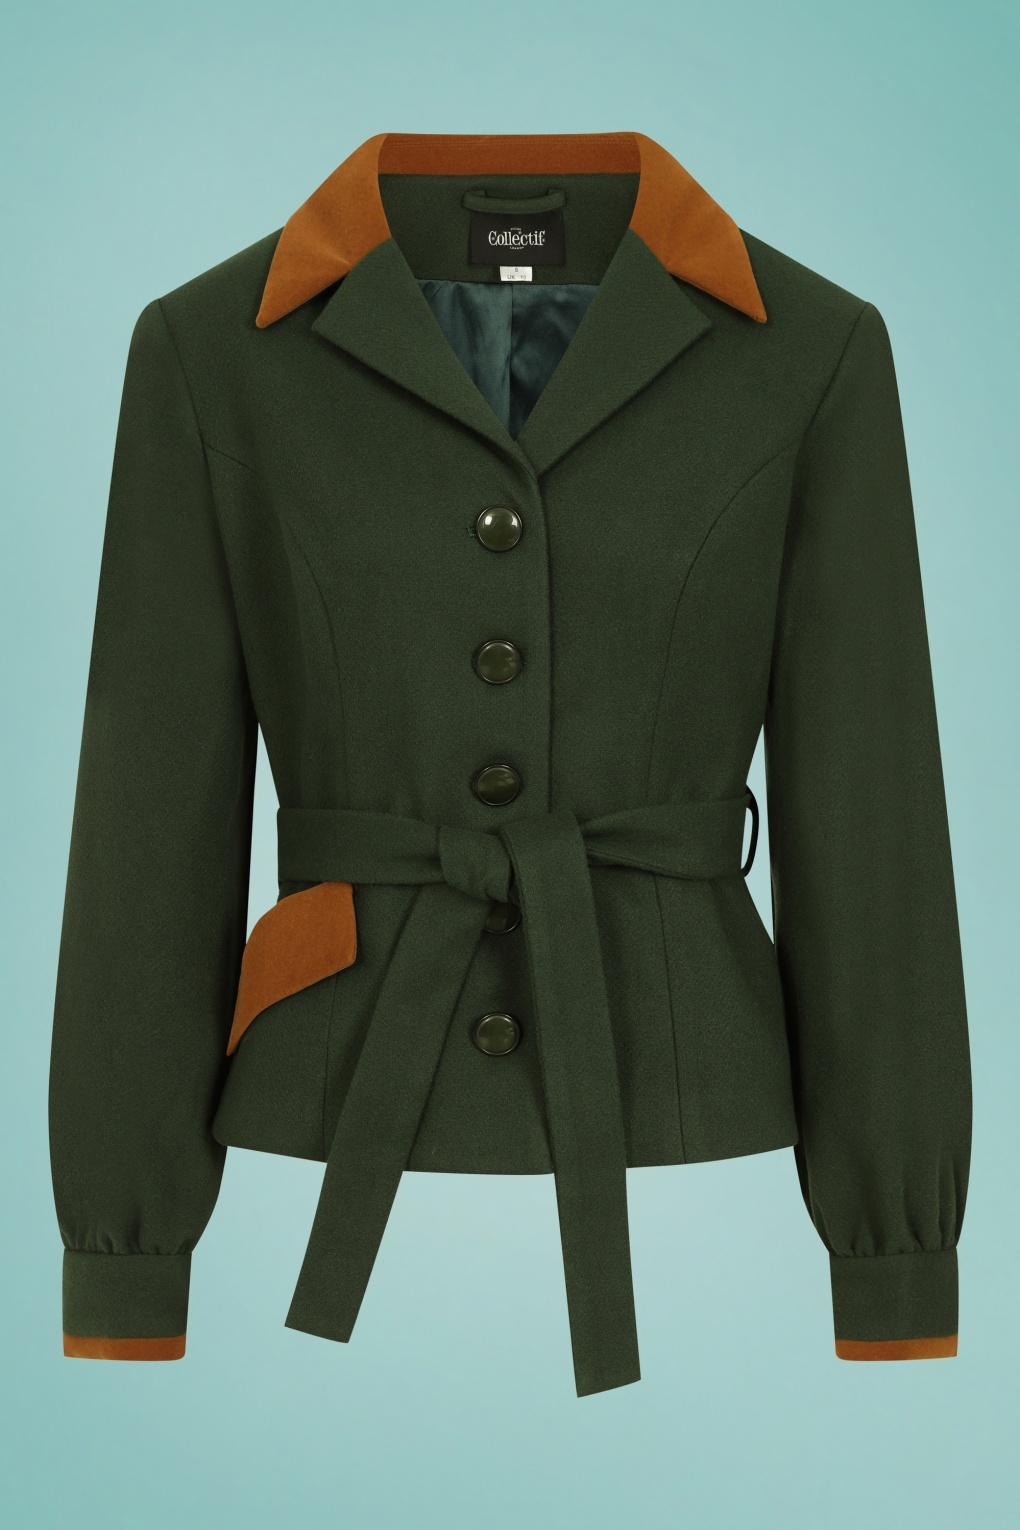 Vintage Coats & Jackets | Retro Coats and Jackets 40s Rosemary Jacket in Forest Green £94.02 AT vintagedancer.com